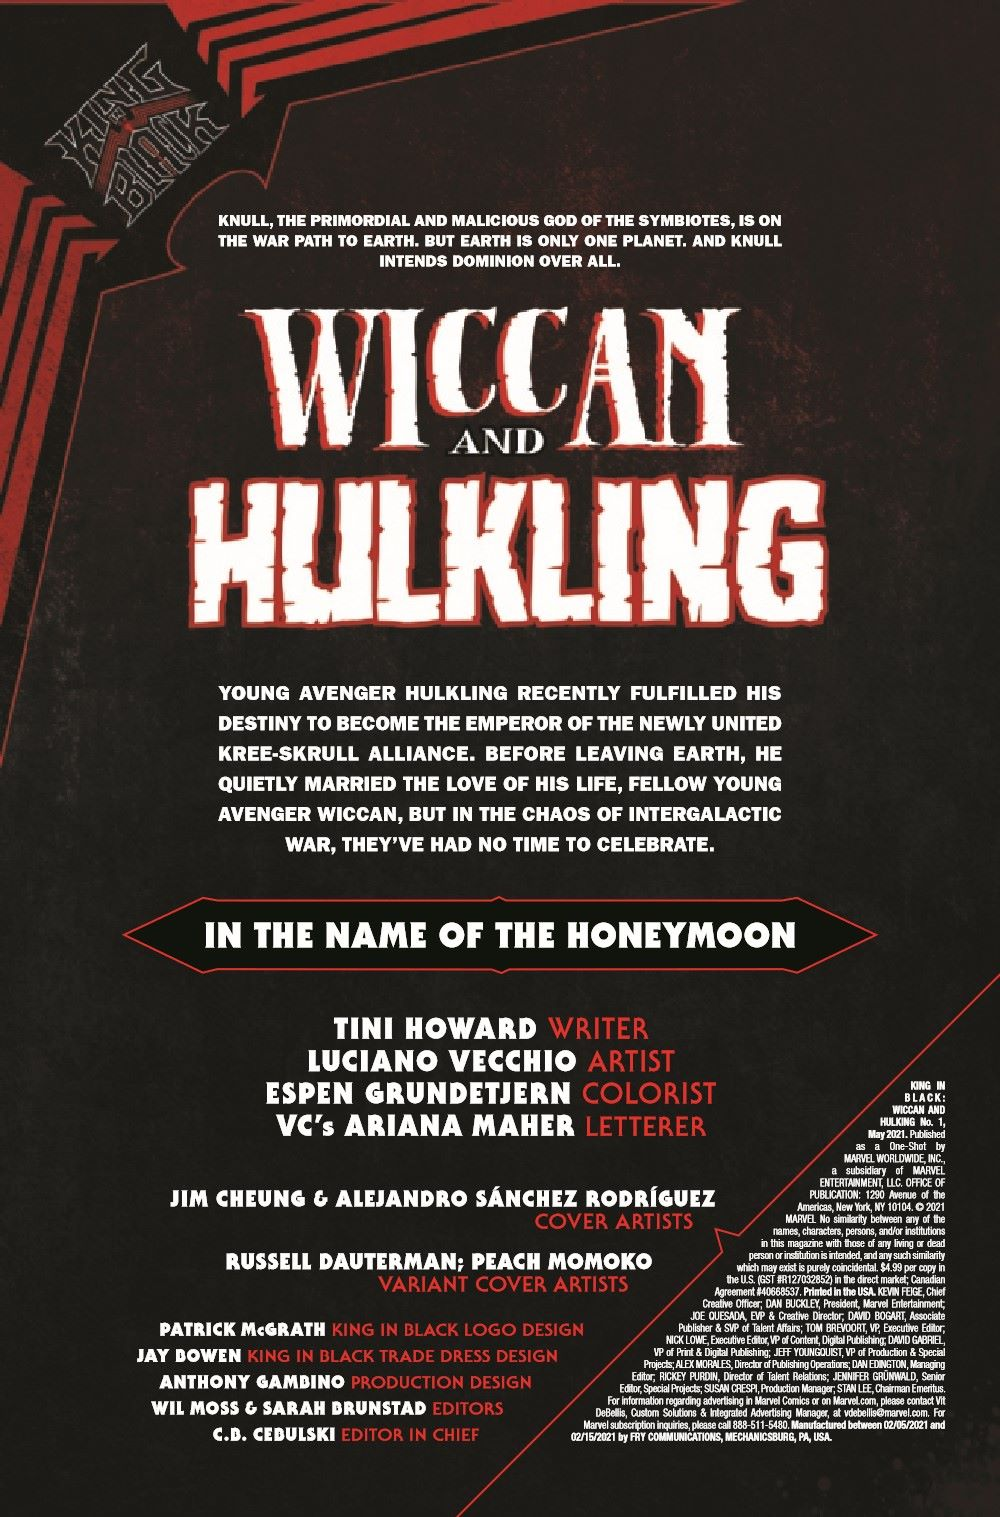 WICCHULKKIB2021001_Preview-2 ComicList Previews: KING IN BLACK WICCAN AND HULKING #1